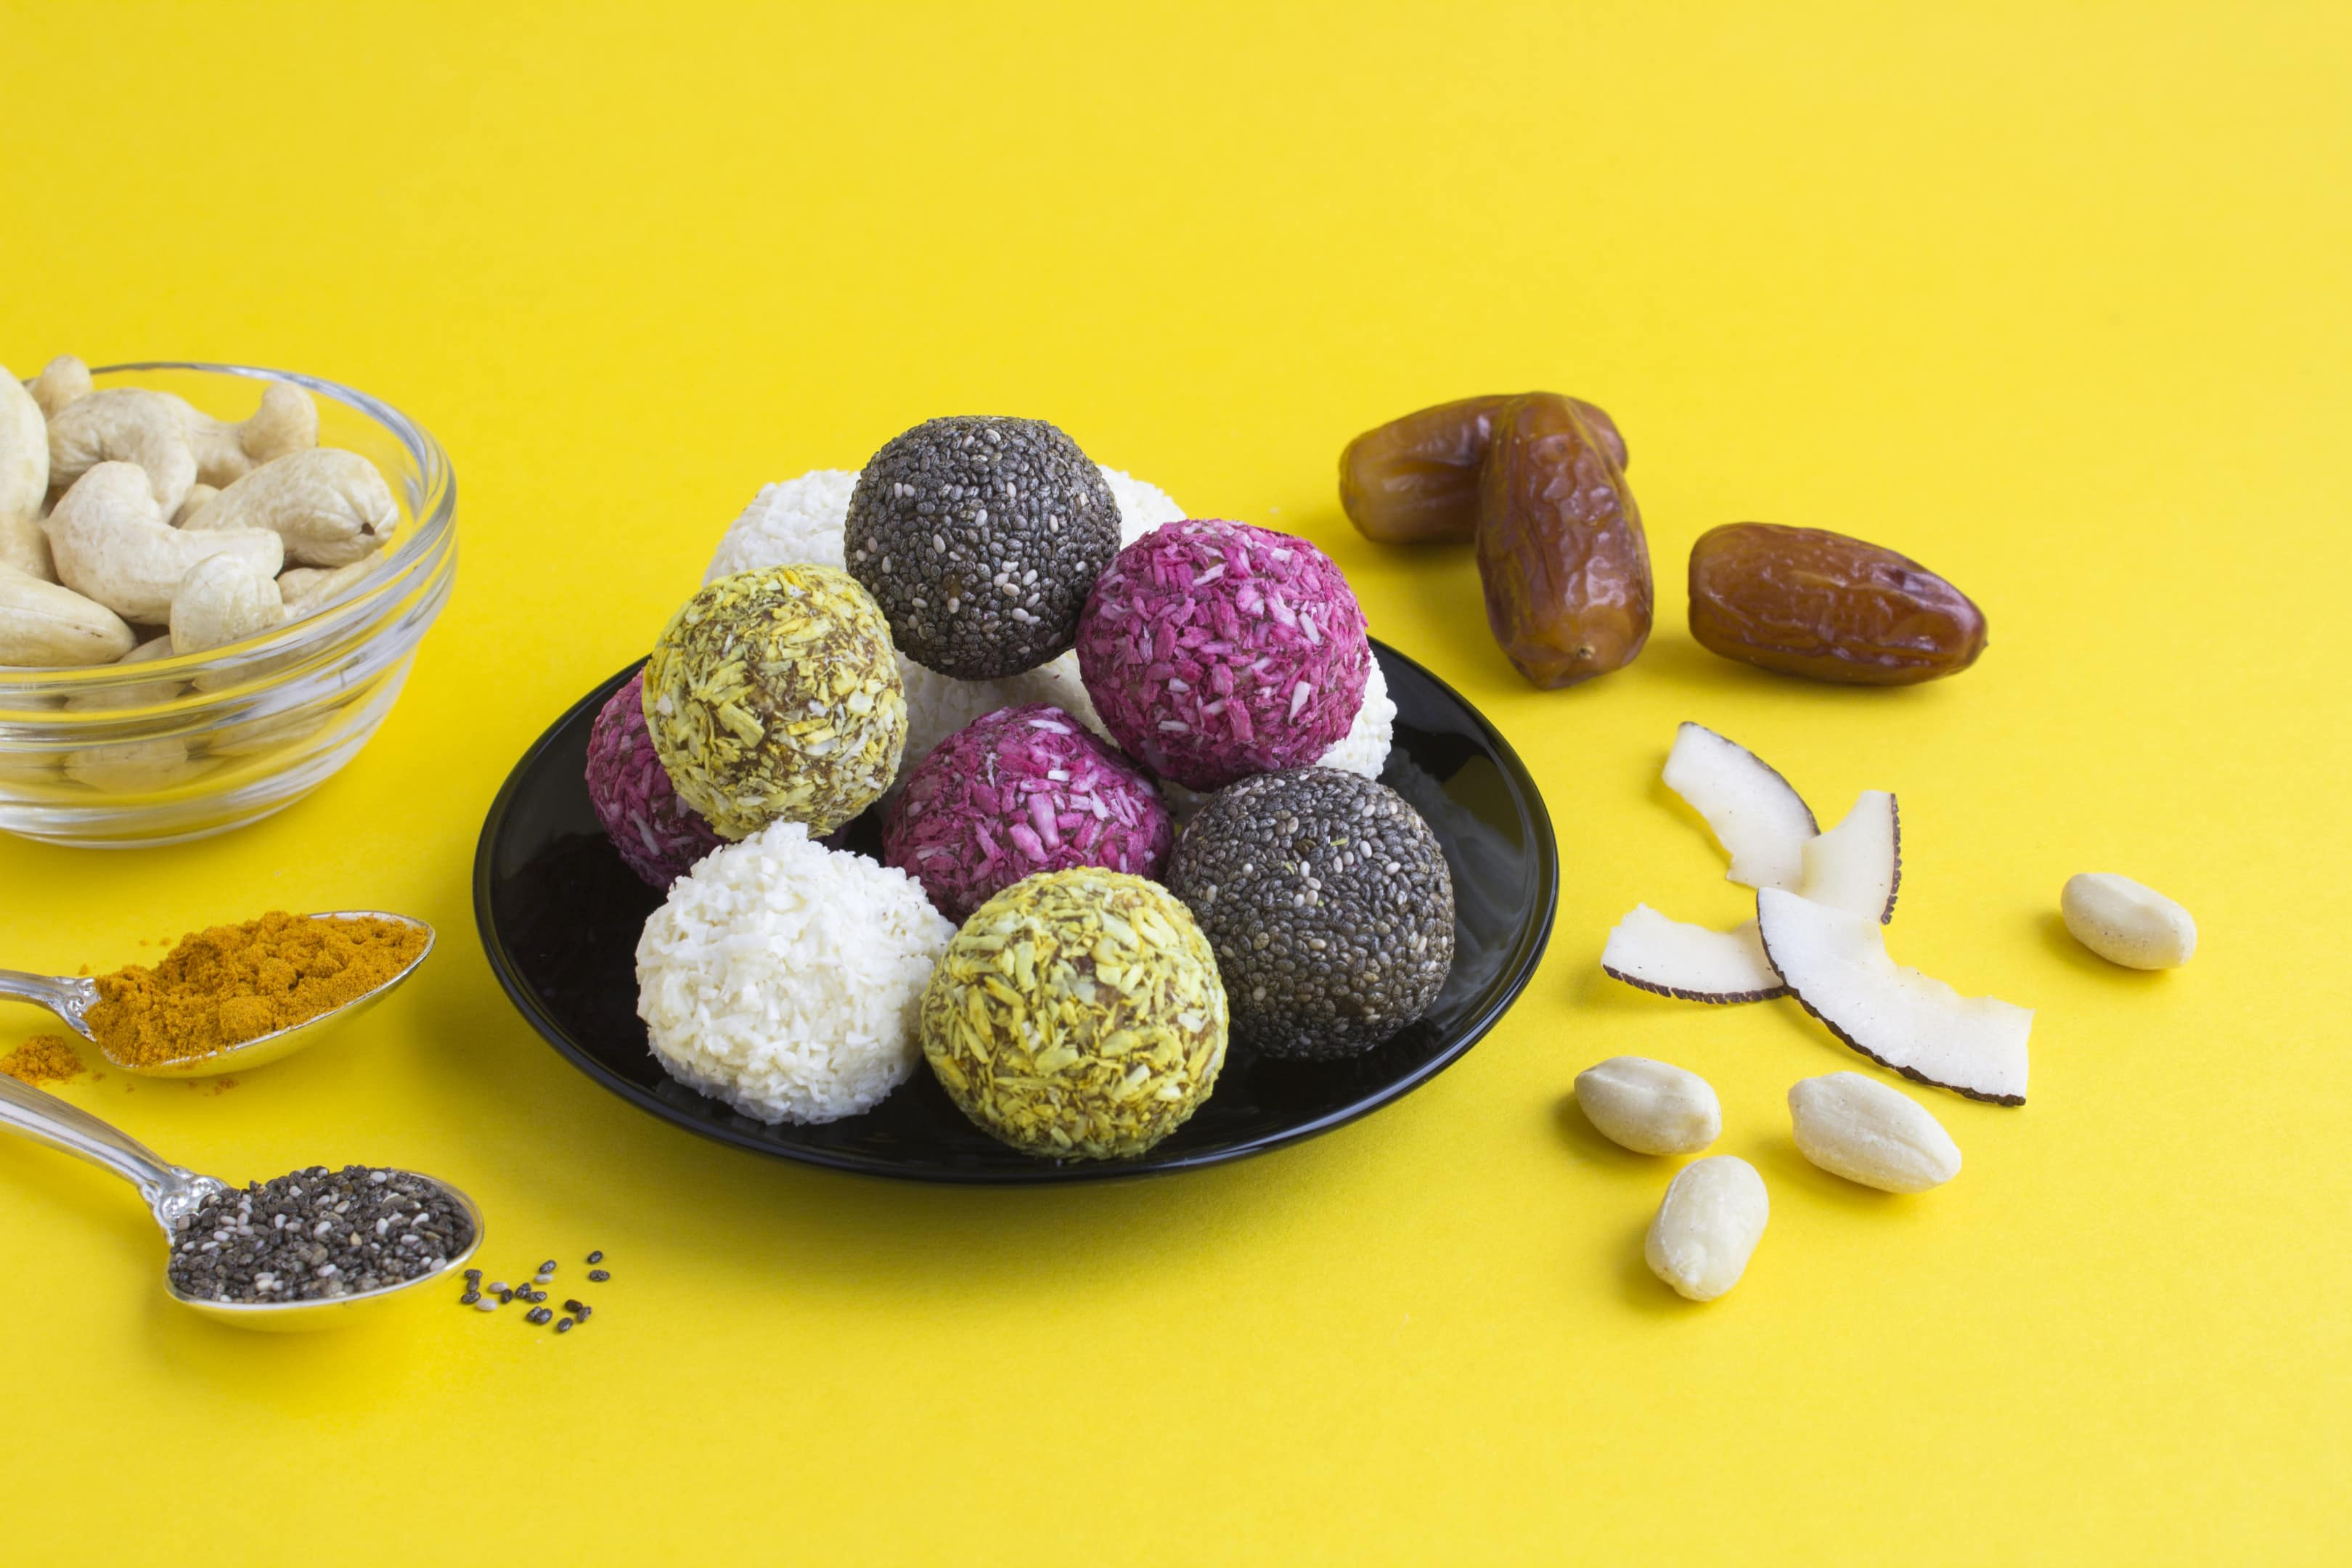 Energy balls of seeds and nuts on black plate on yellow background